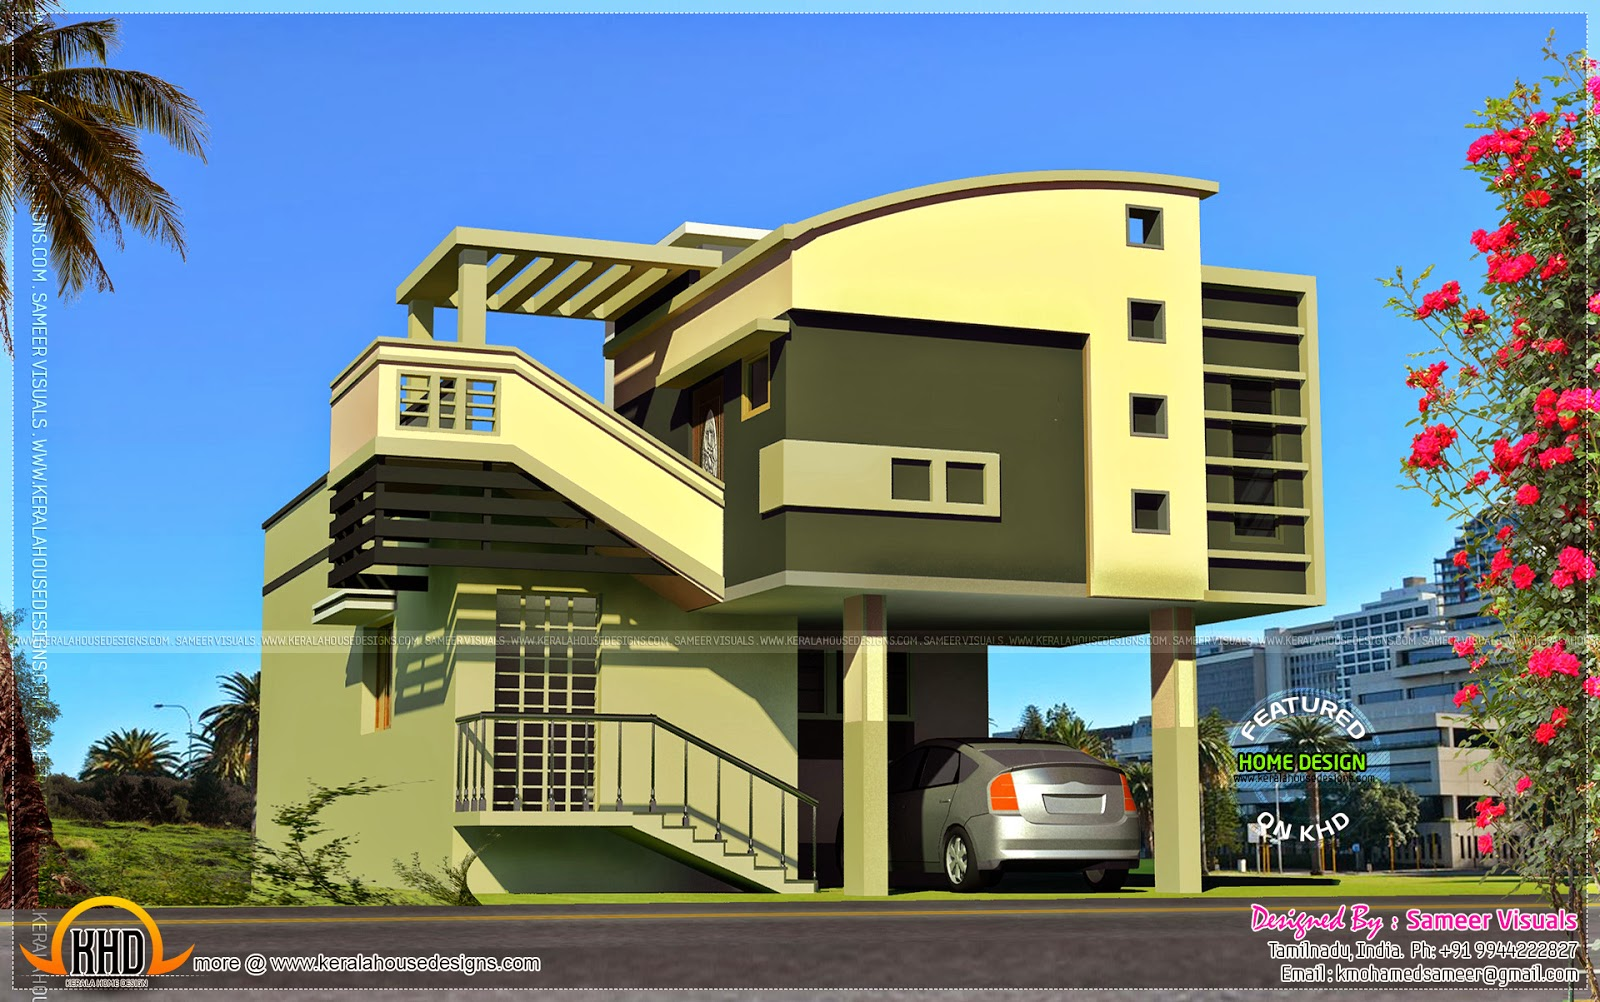 Mezzanine Floor Elevation : Mezzanine house exterior idea kerala home design and